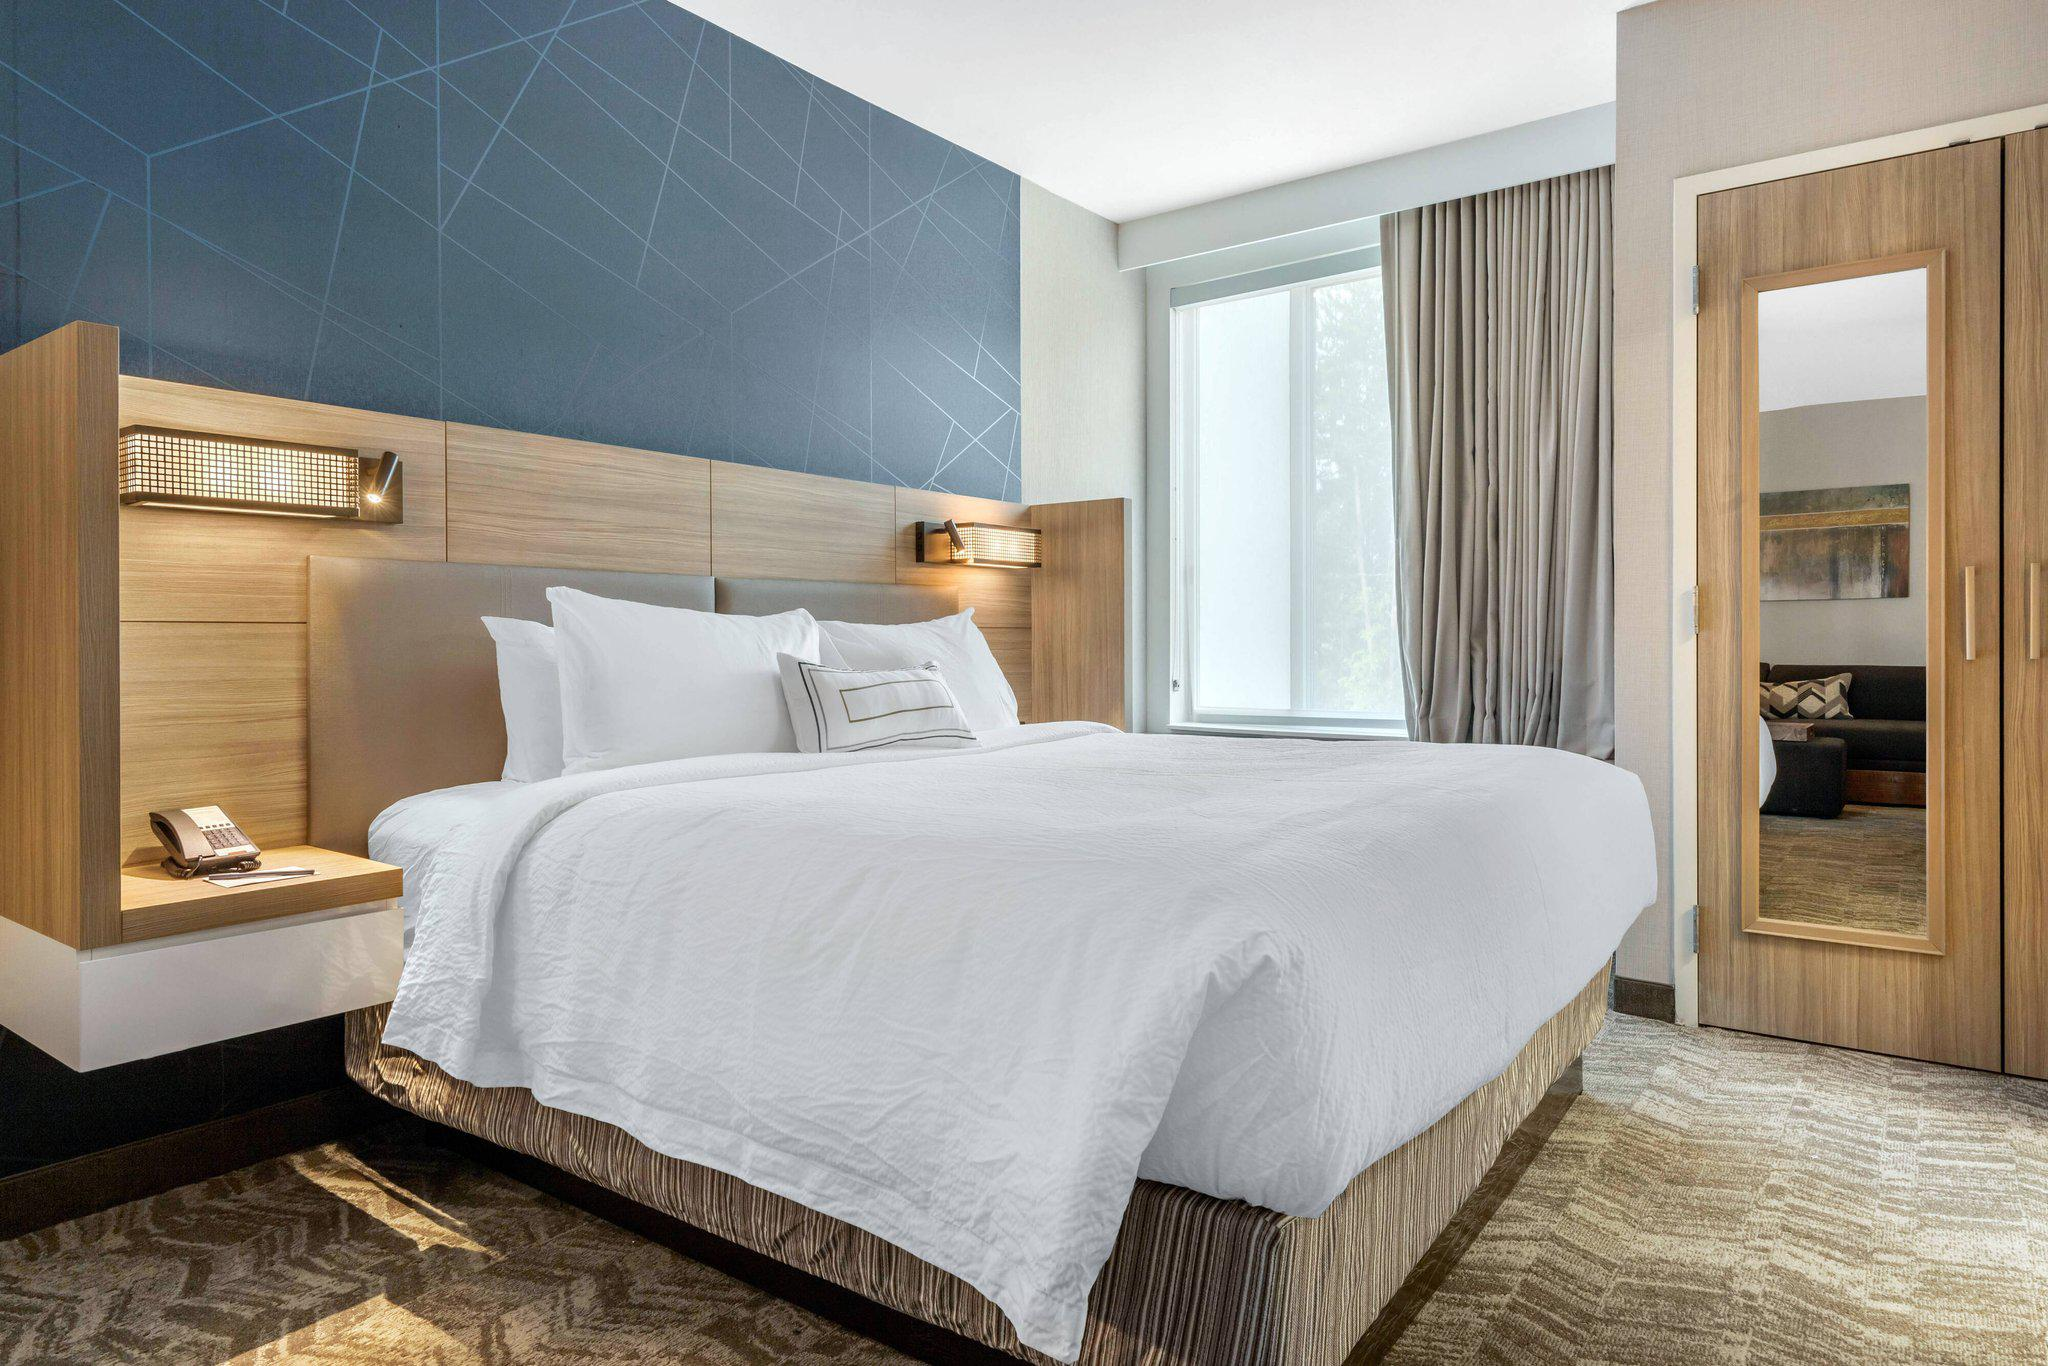 SpringHill Suites by Marriott Charlotte Southwest